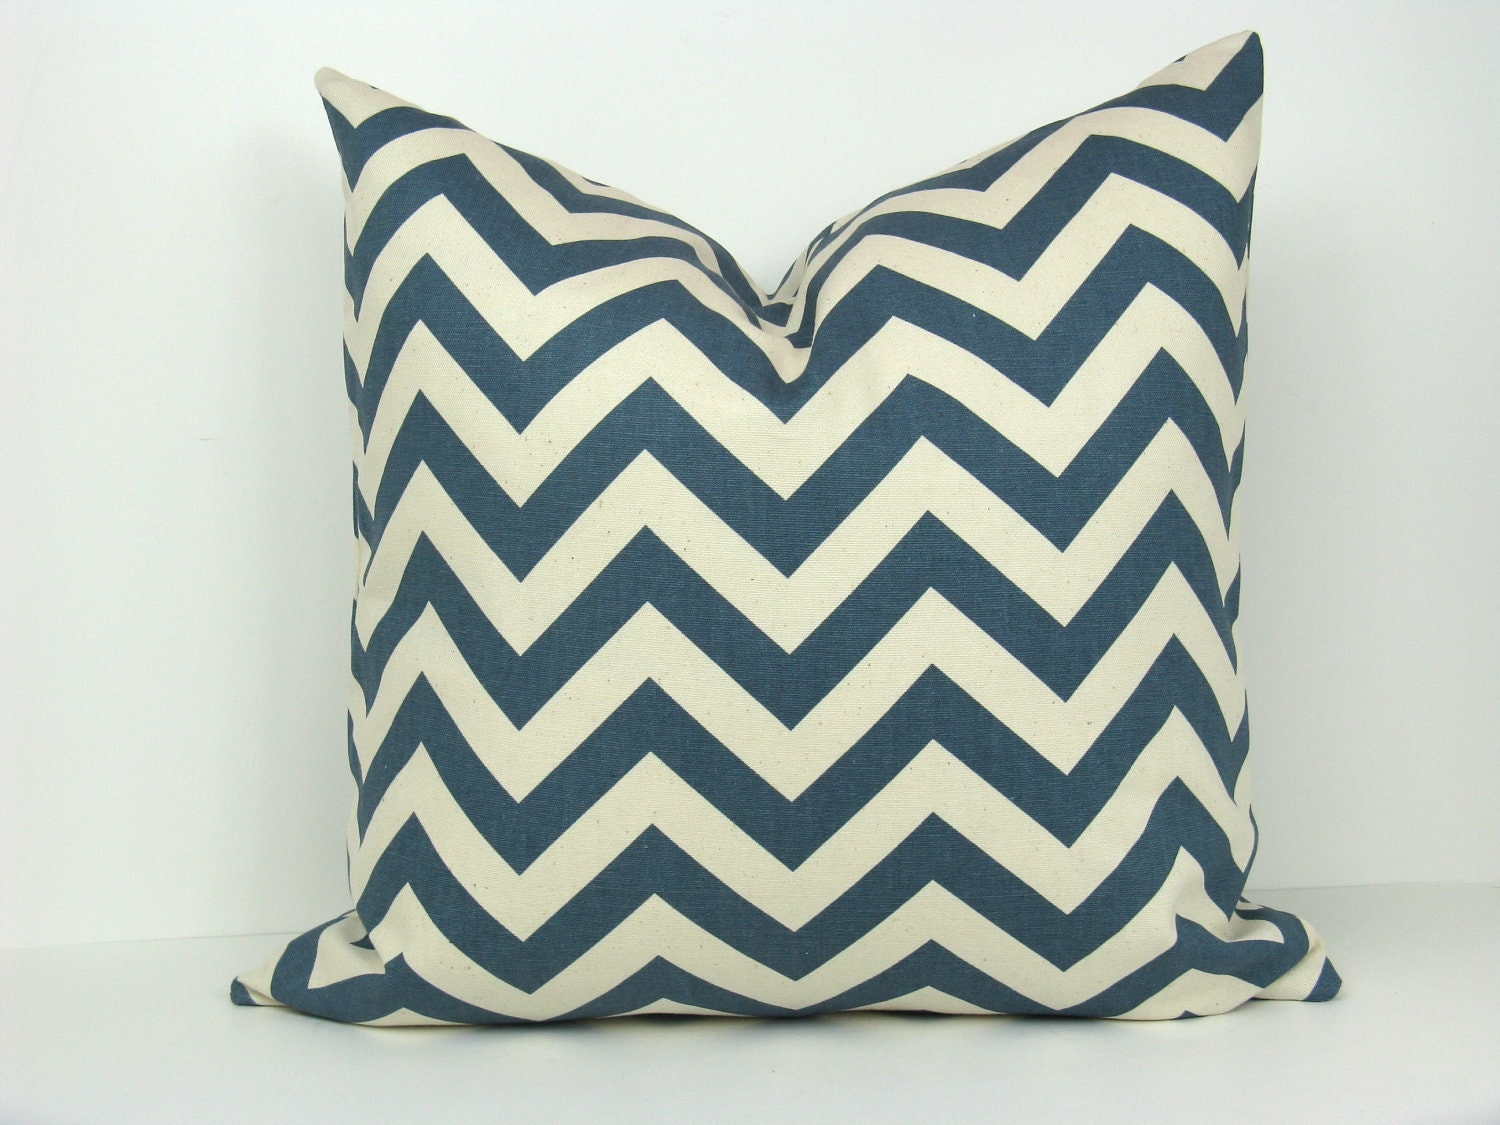 22x22 Throw Pillow Covers : Pillow covers Blue Pillow Chevron Pillows Blue by EastAndNest